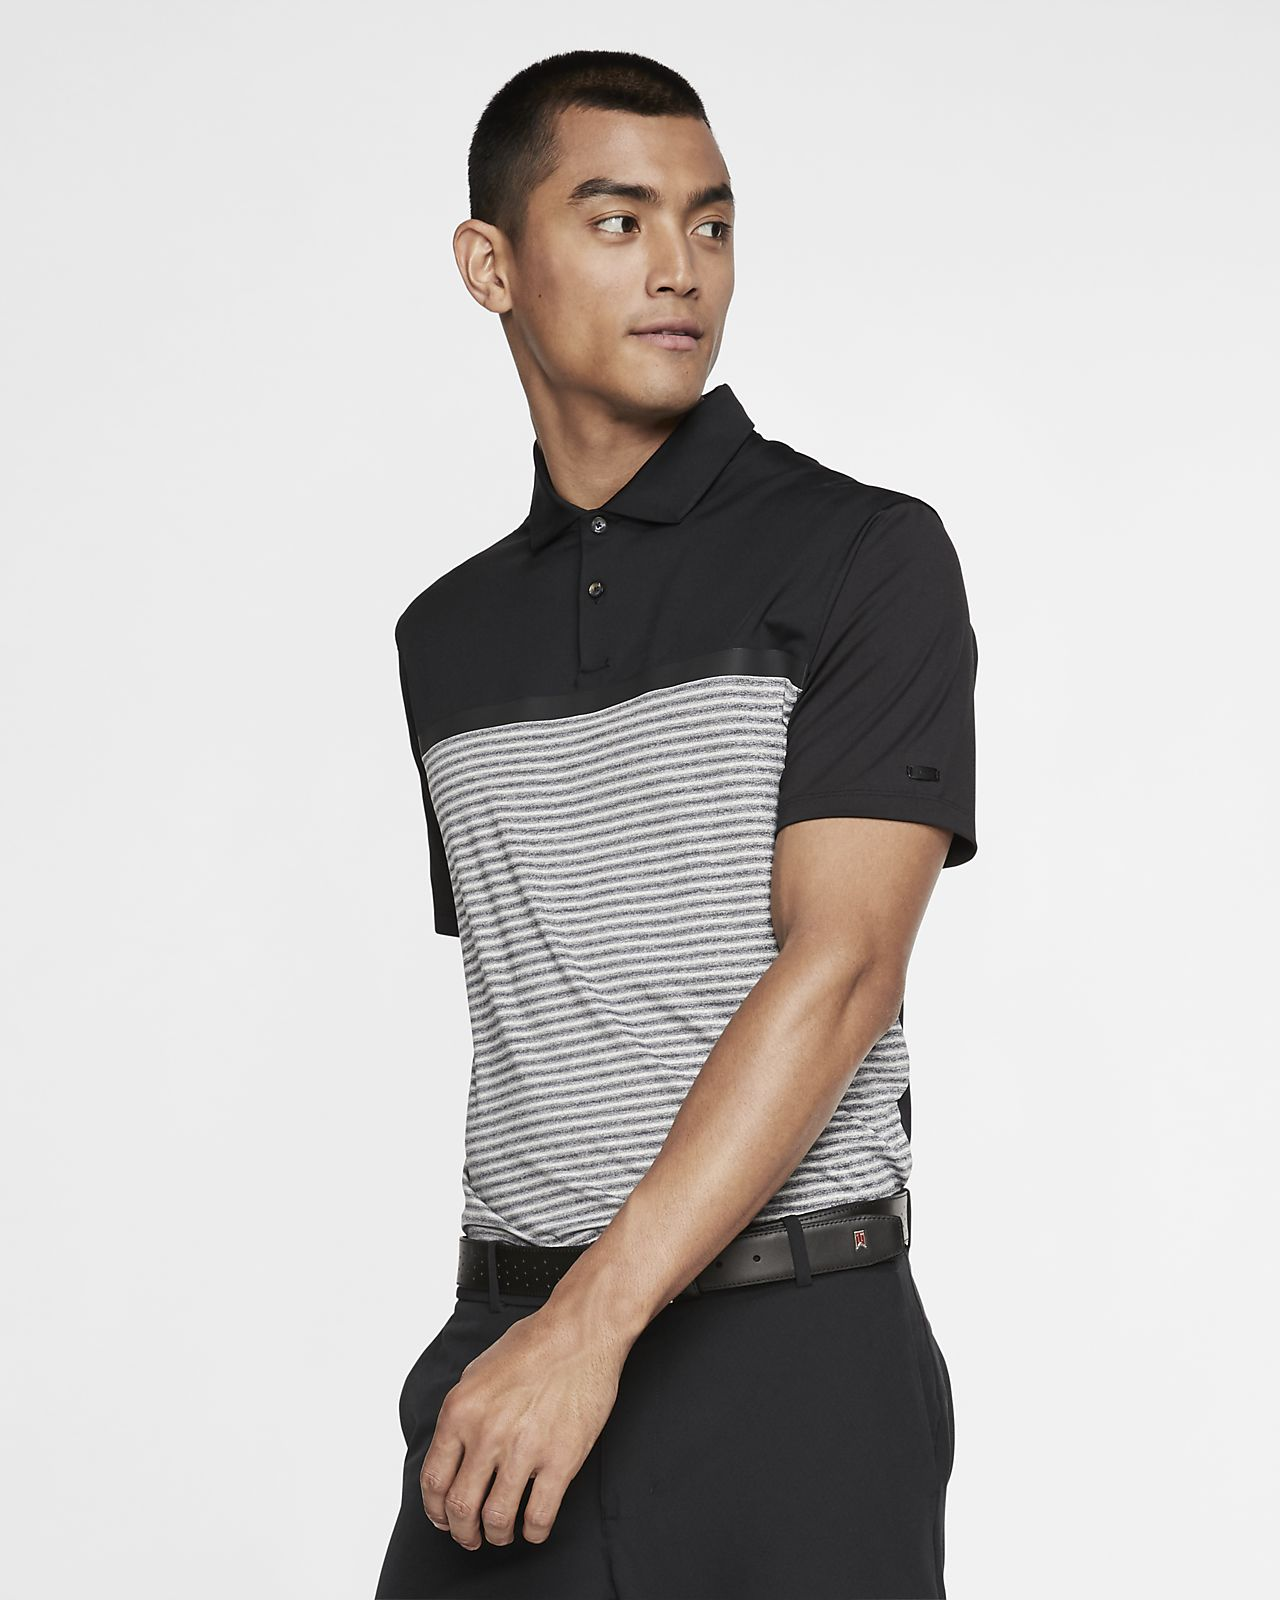 579aab3e1 Nike Dri-FIT Tiger Woods Vapor Men's Striped Golf Polo. Nike.com MA